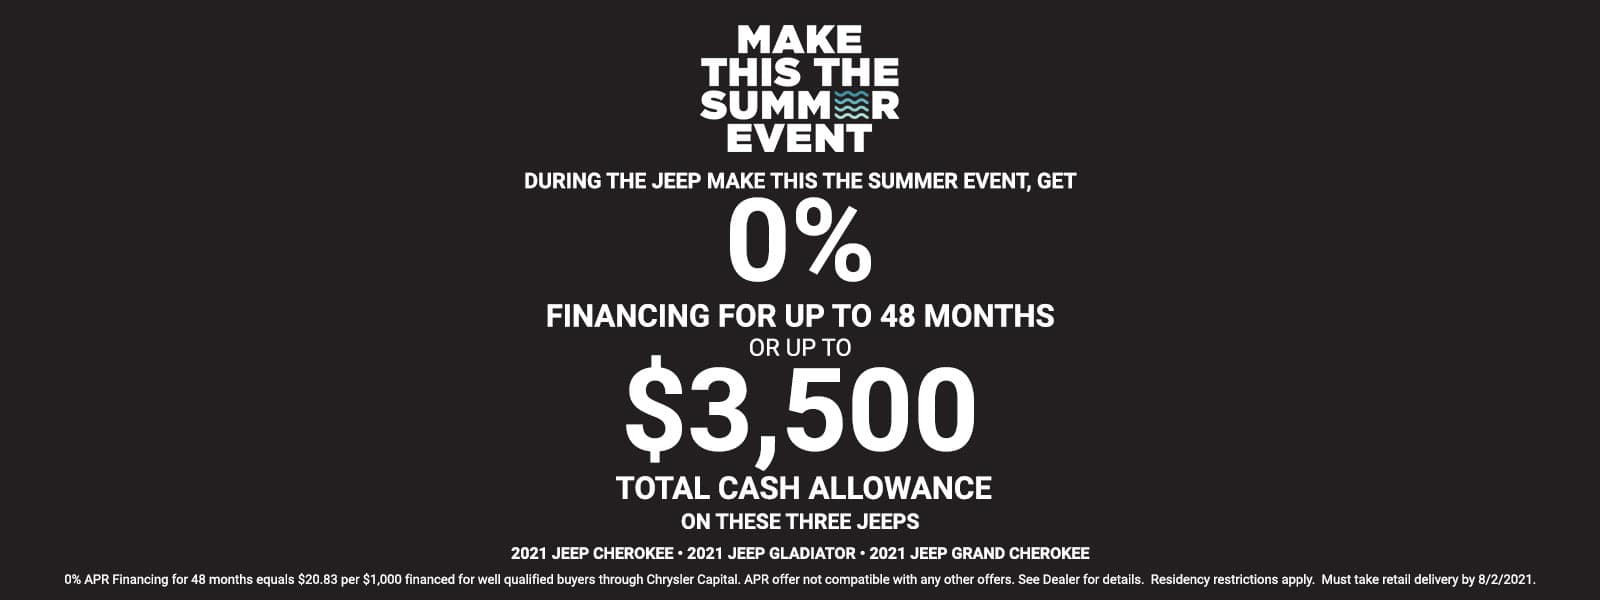 2021 Make This The Summer Offer